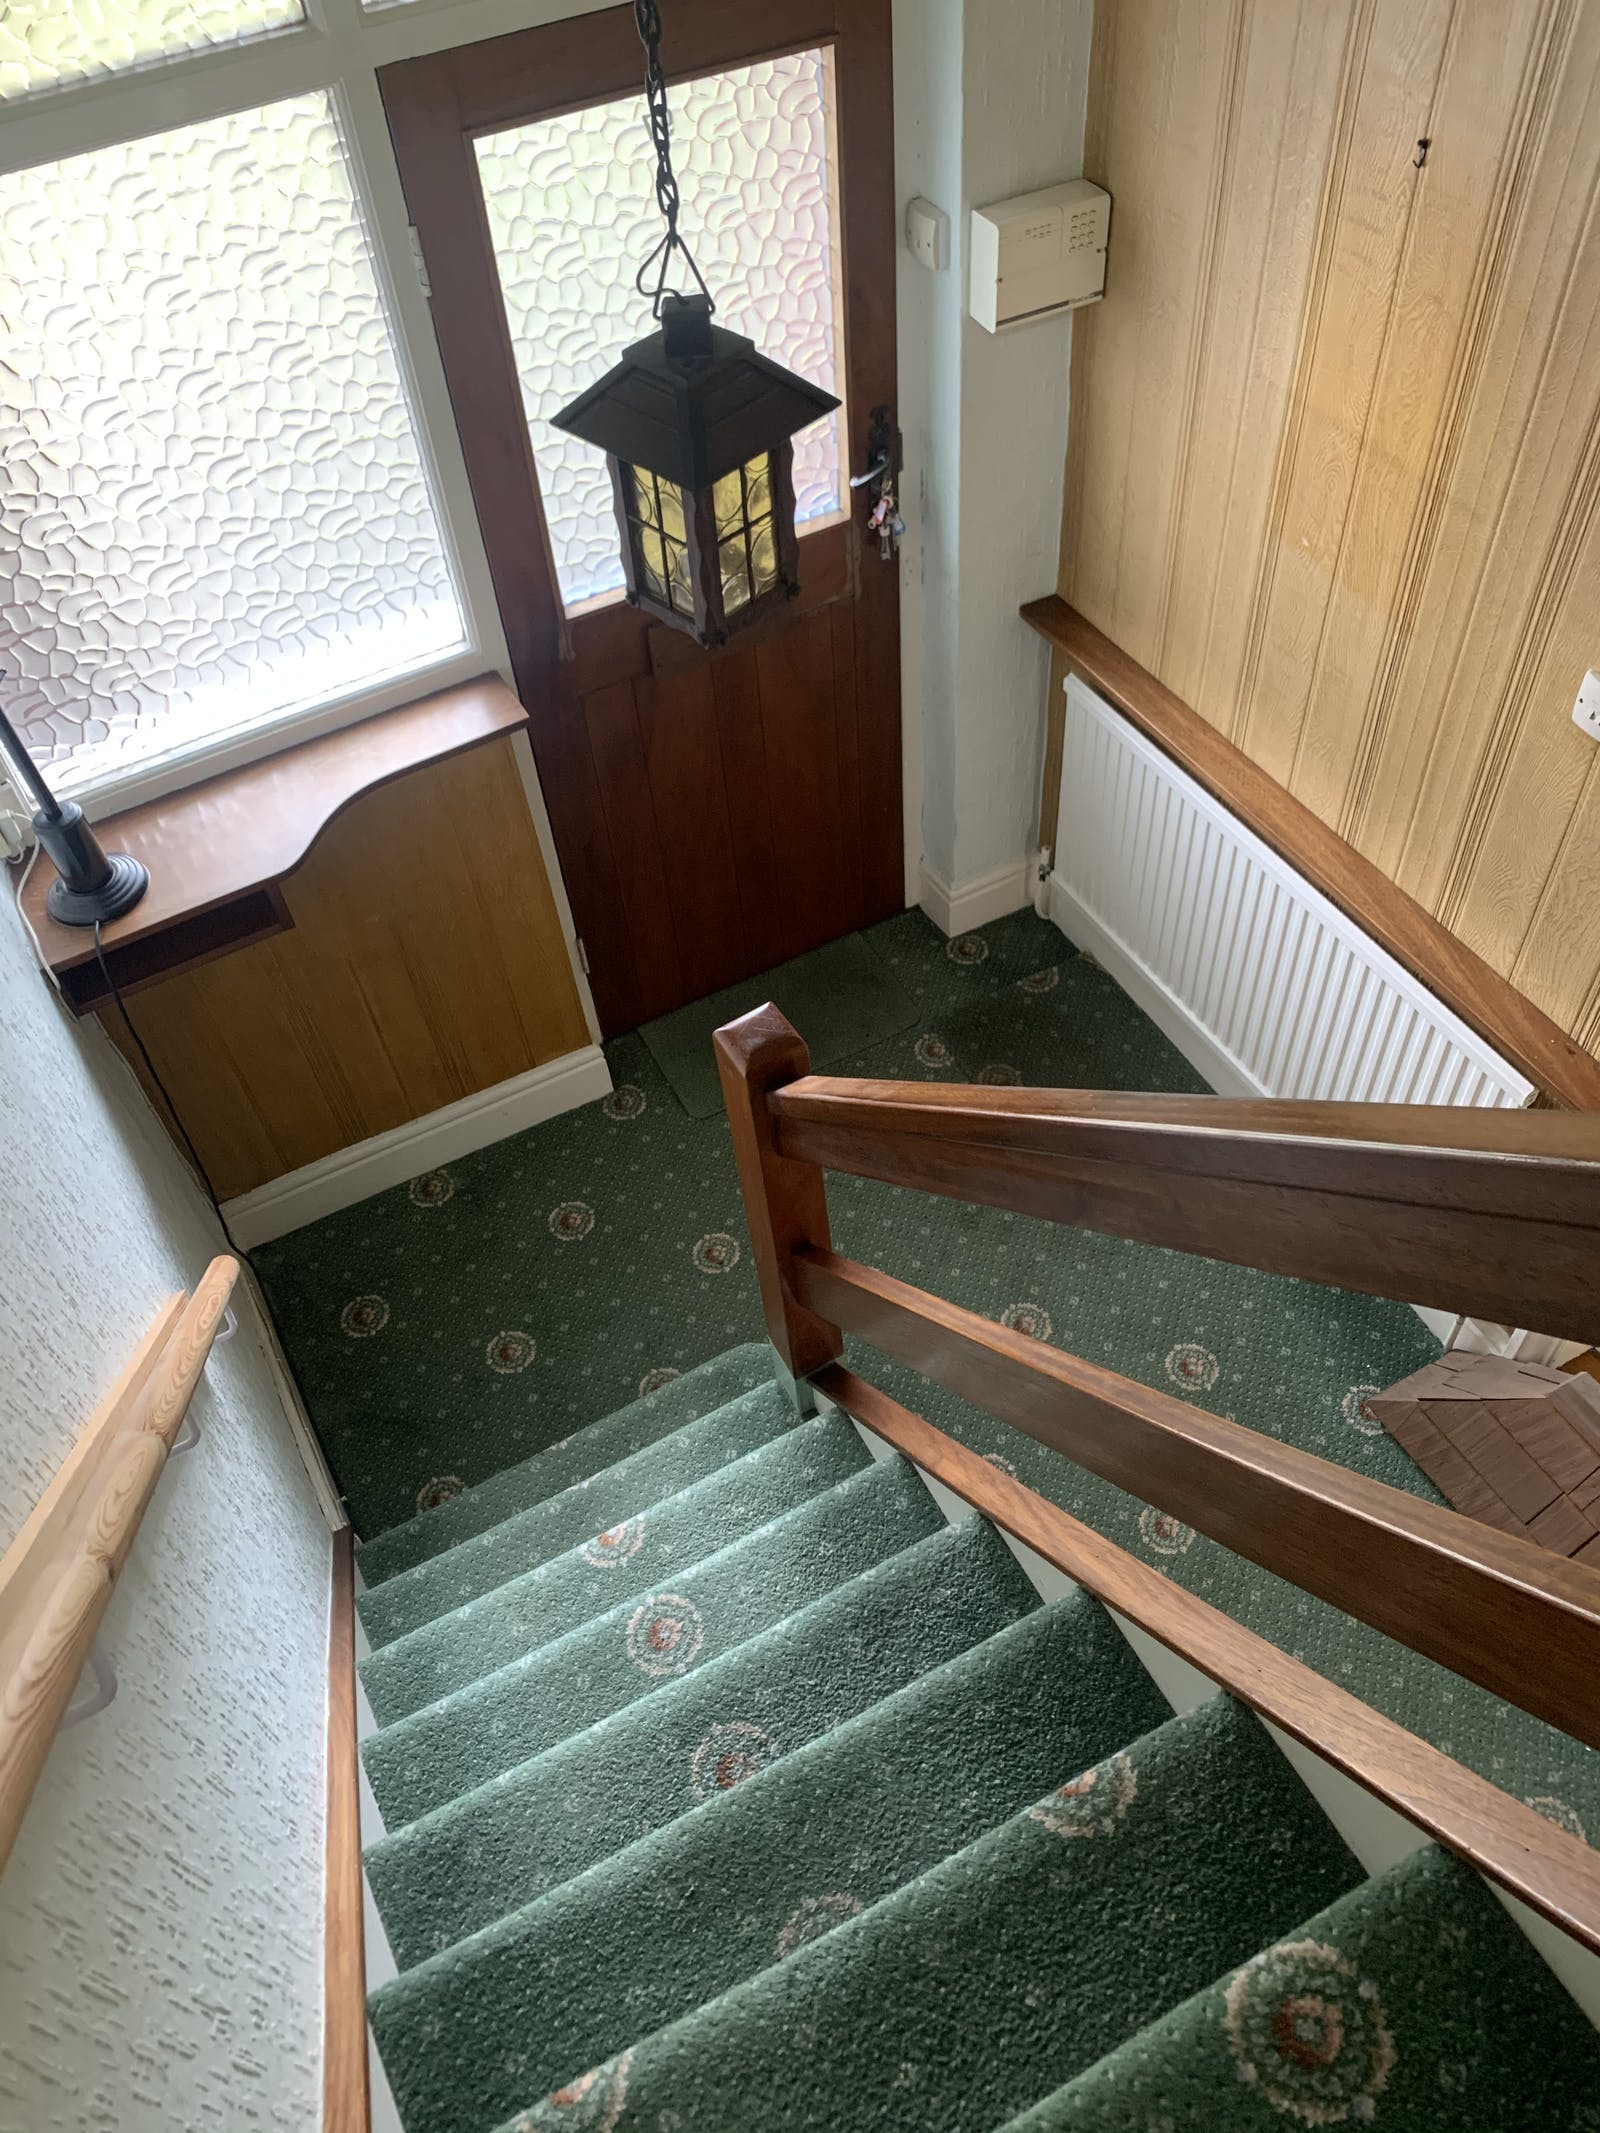 Image of dated green carpet running down stairs.